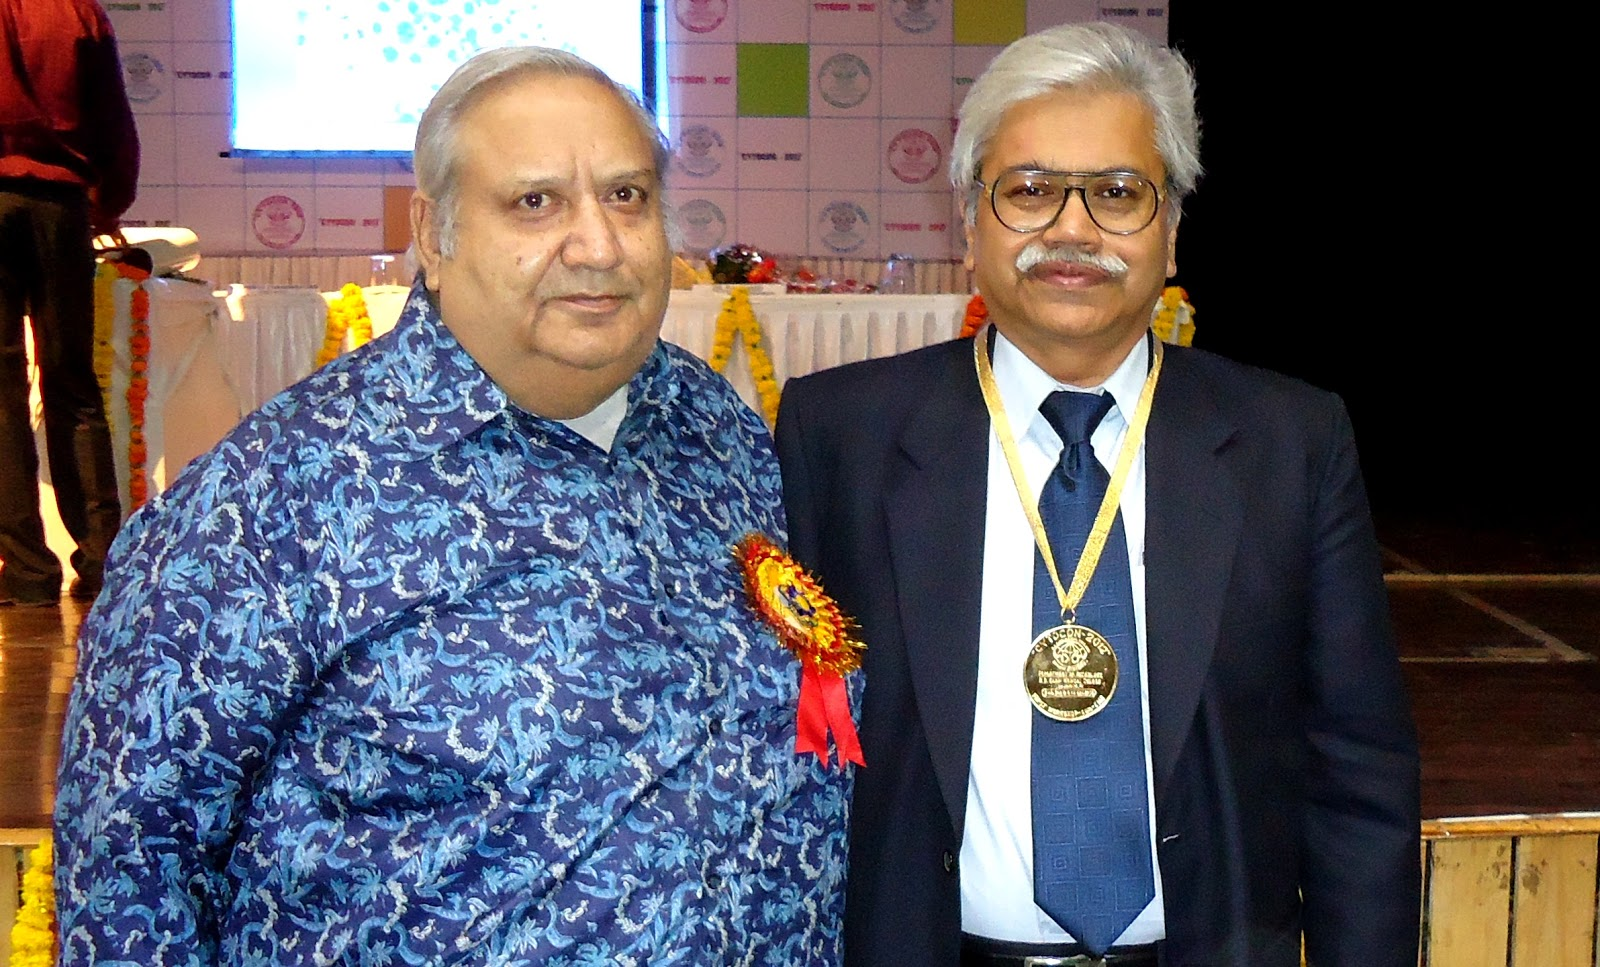 Oral Pathology India: A FRIEND OF IAOMP RECEIVES A GOLD MEDAL